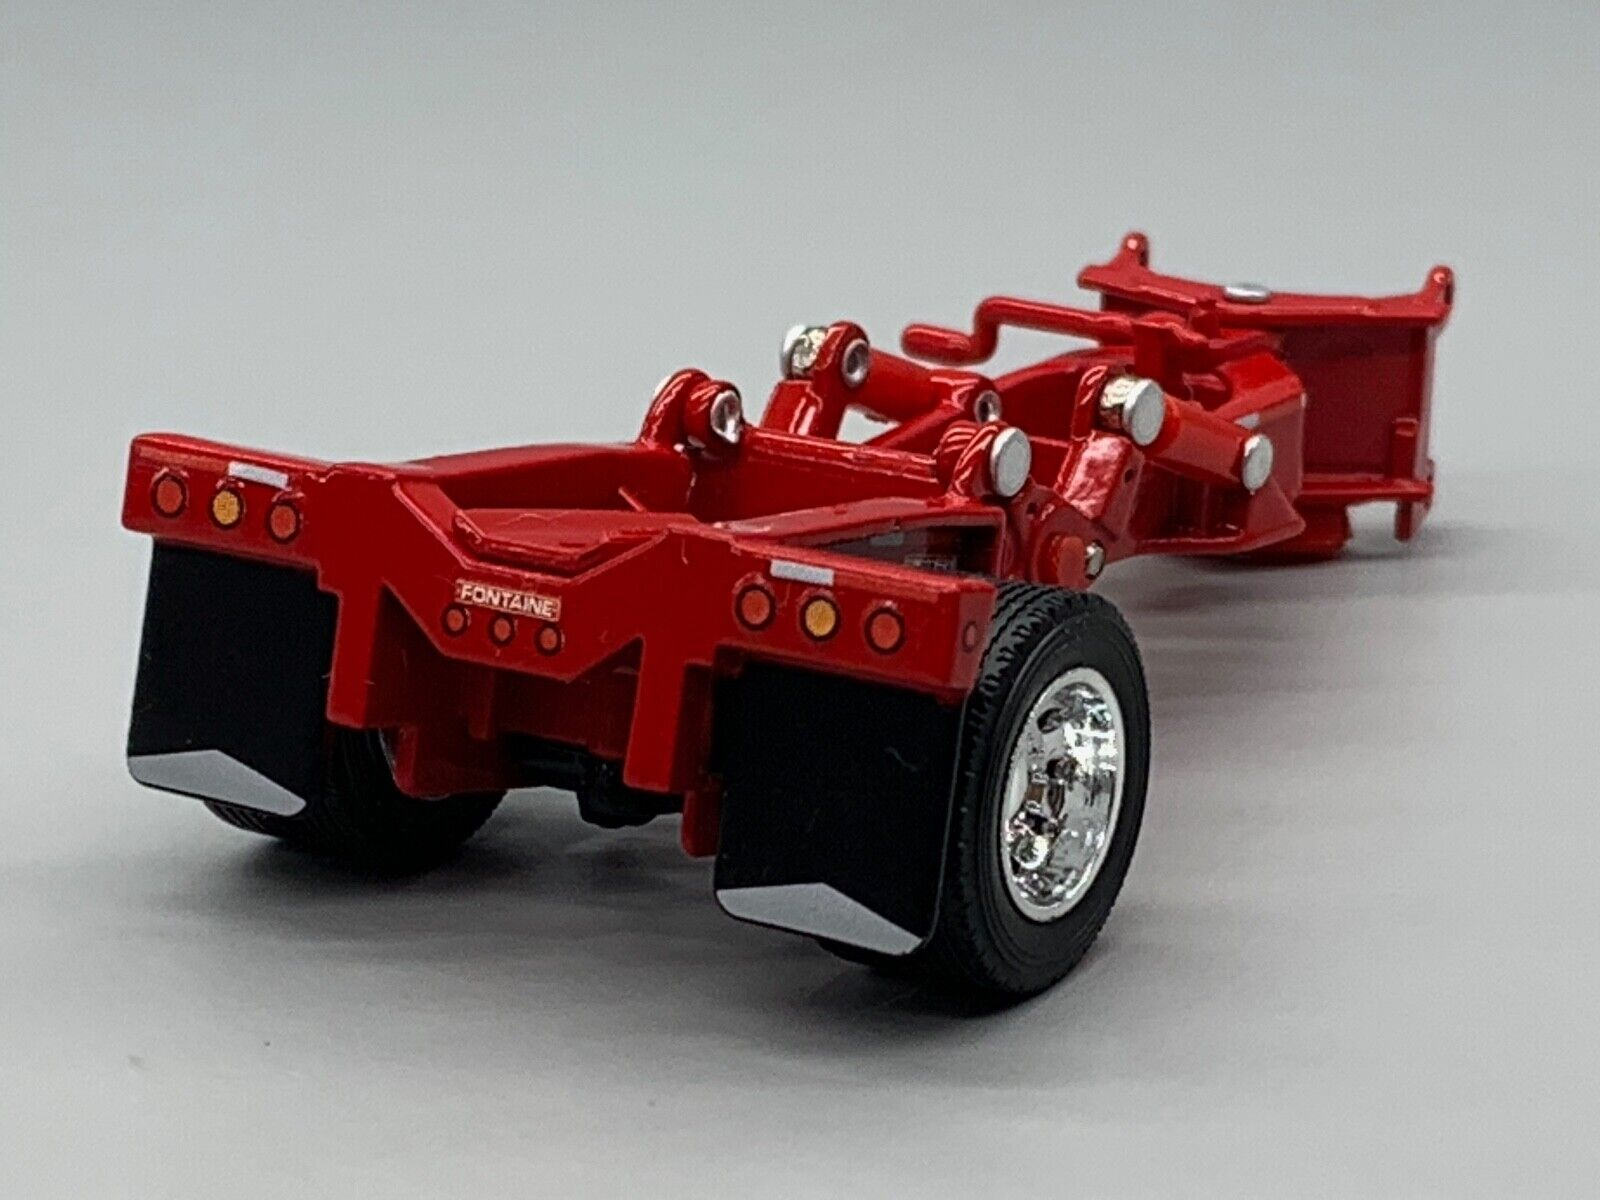 1/64 DCP RED FONTAINE MAGNITUDE LOWBOY STINGER